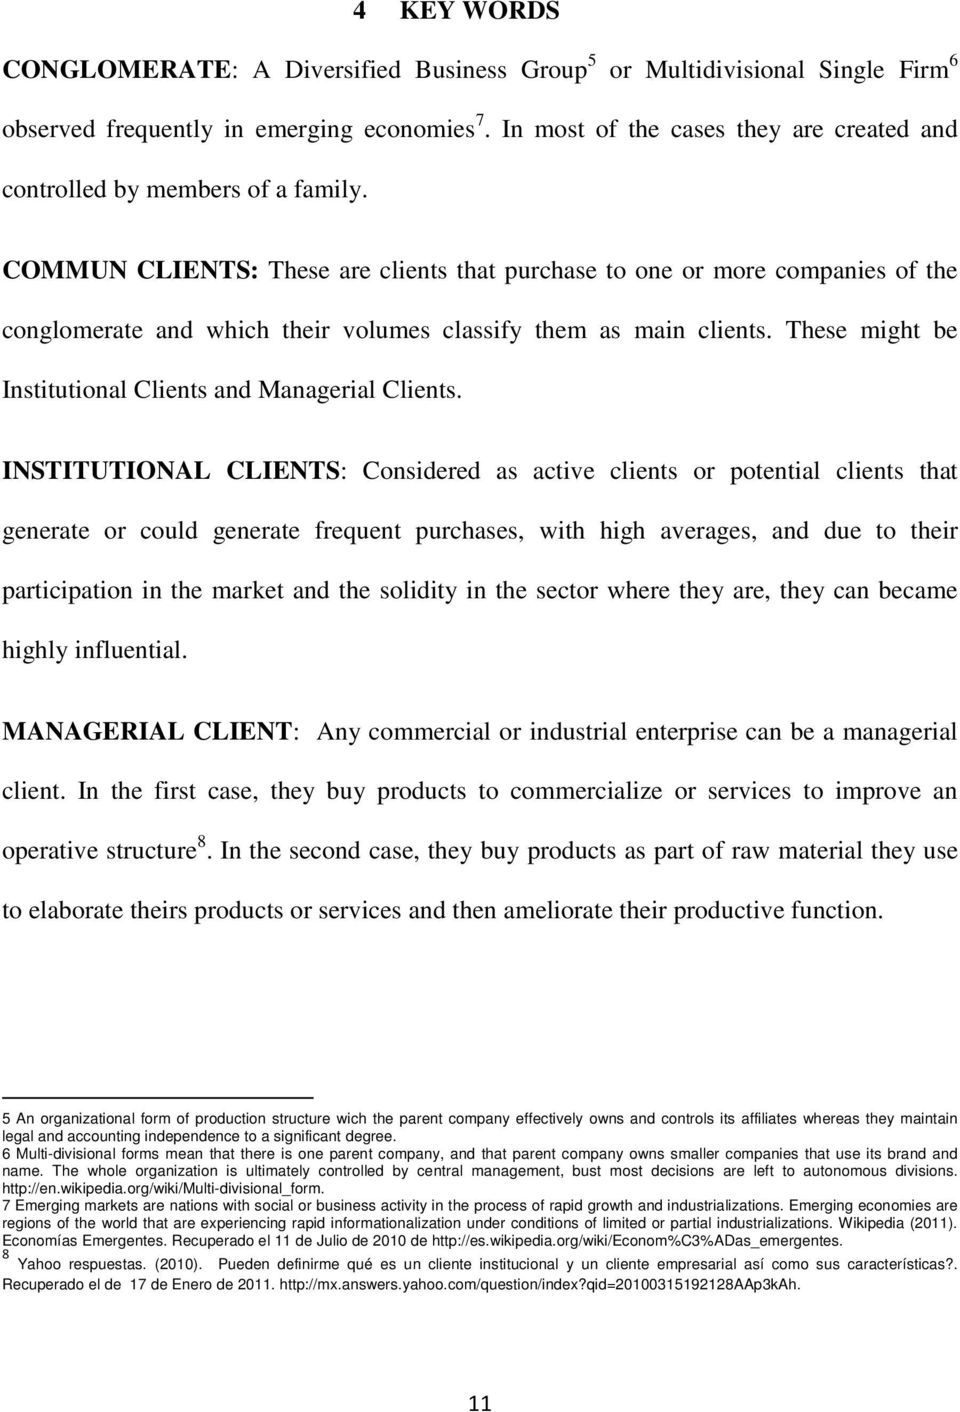 COMMUN CLIENTS: These are clients that purchase to one or more companies of the conglomerate and which their volumes classify them as main clients.